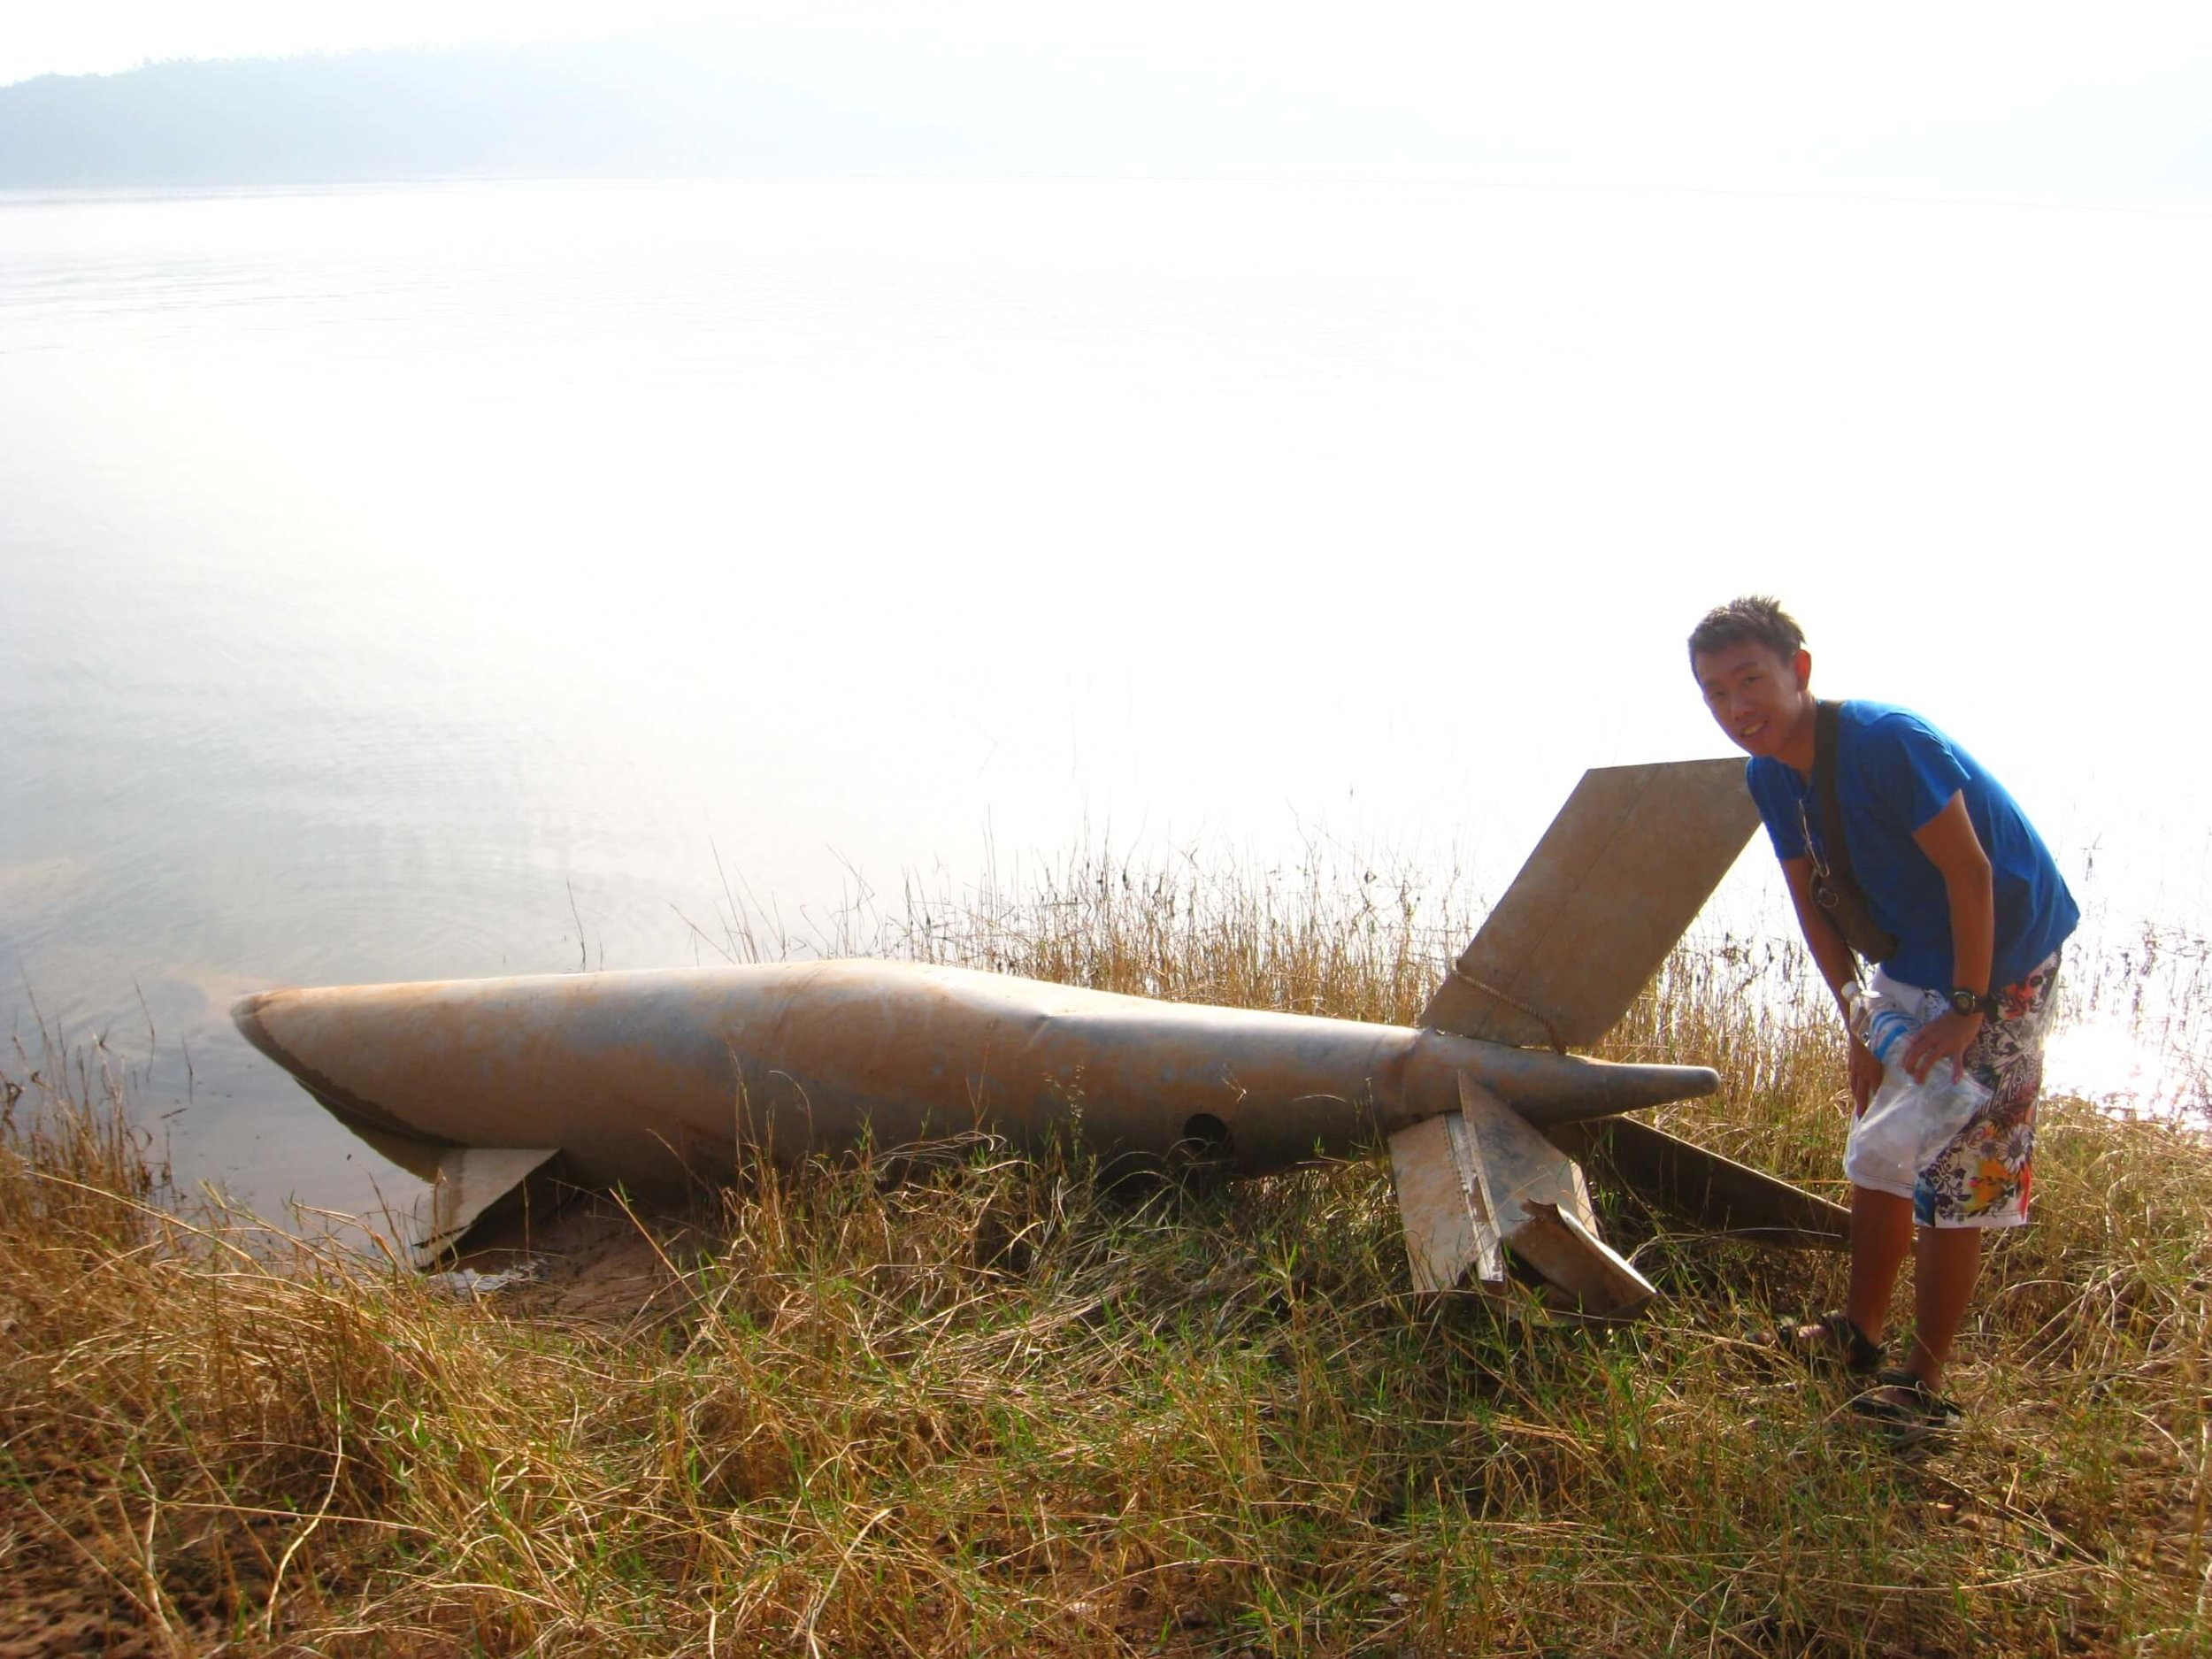 On afternoon, we chanced upon a bomb left behind during the Vietnam war, while circling the remote island.